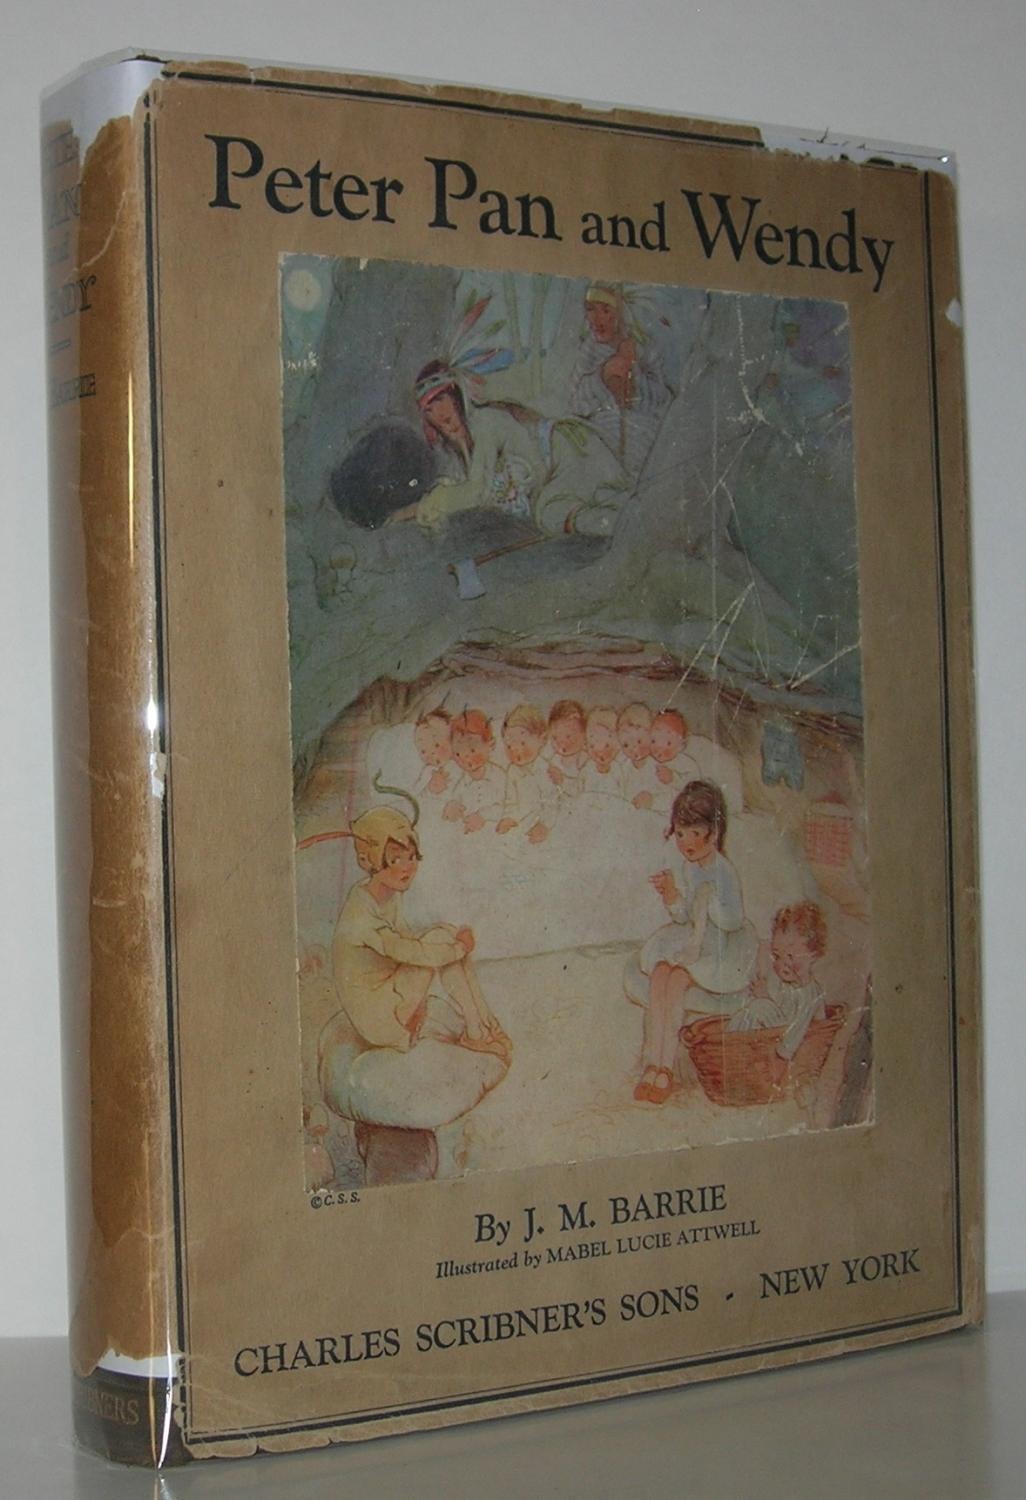 PETER PAN AND WENDY: Barrie, J. M. - Illustrated by Mabel Lucie Attwell